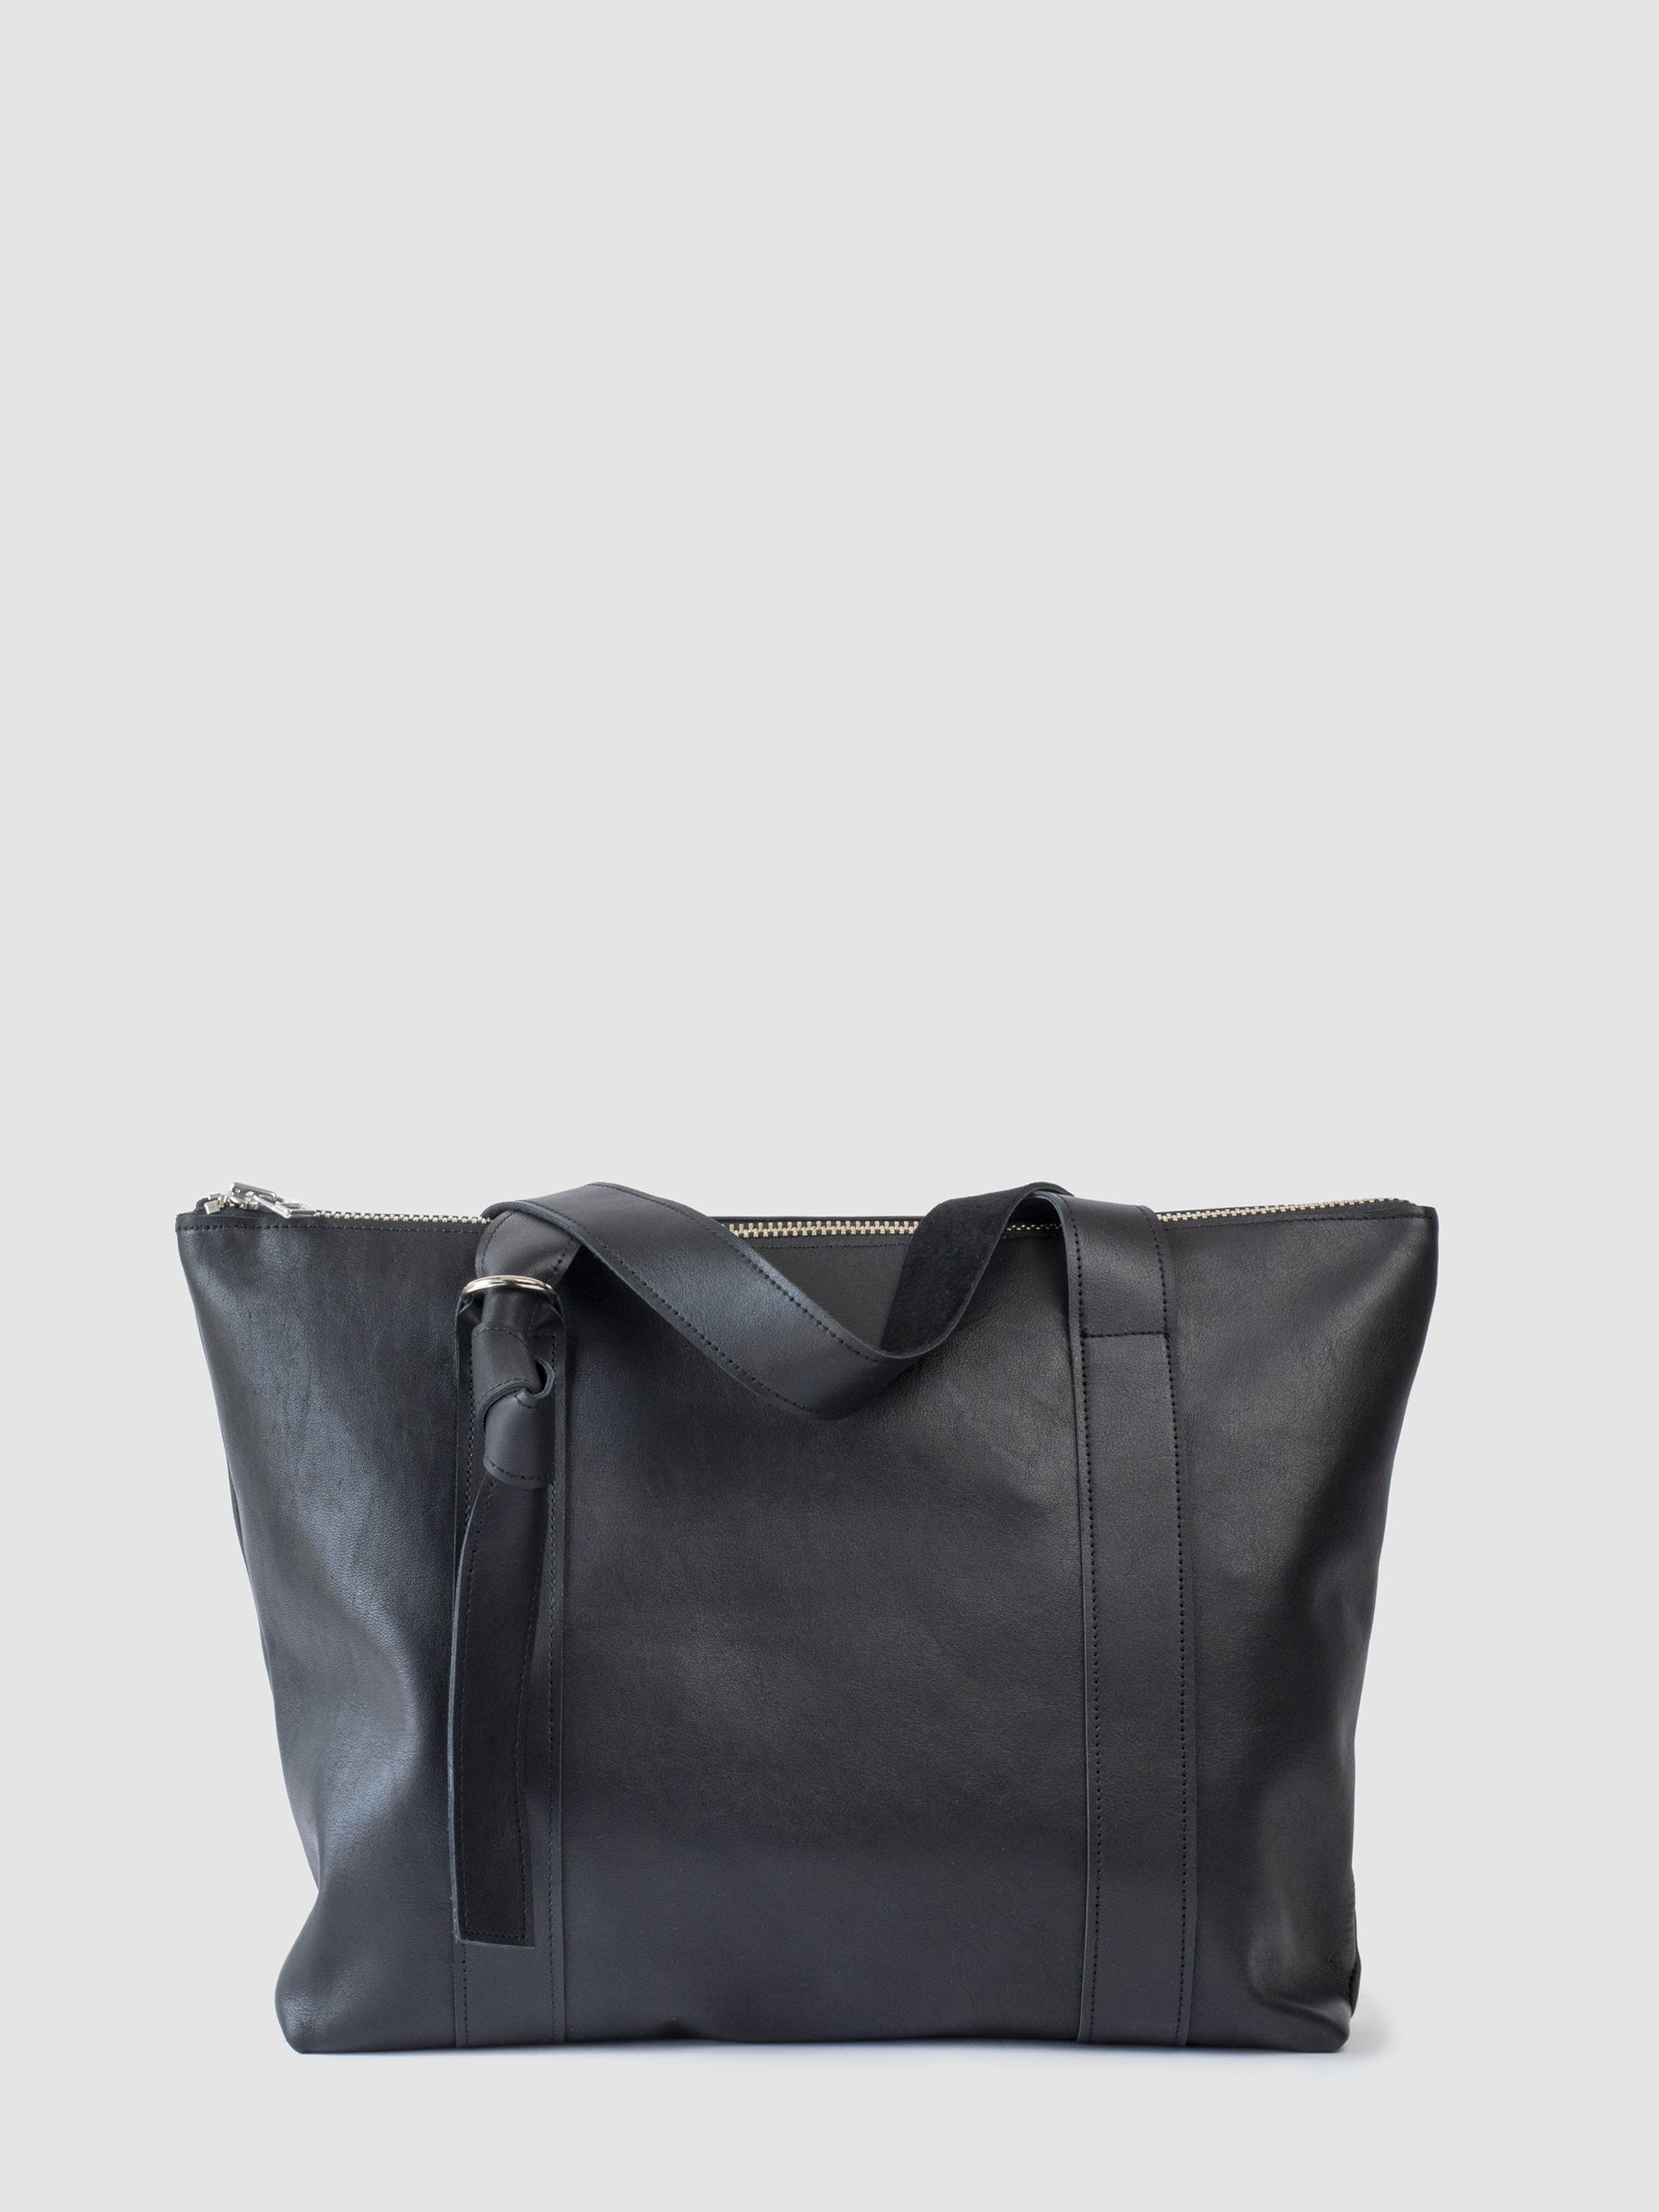 The SONYA LEE Nancy leather laptop tote features twin carry adjustable knot straps. Debossed logo on shoulder strap. Zippered closure. Ethically handmade in Canada using full grain leather. Free shipping across North America.